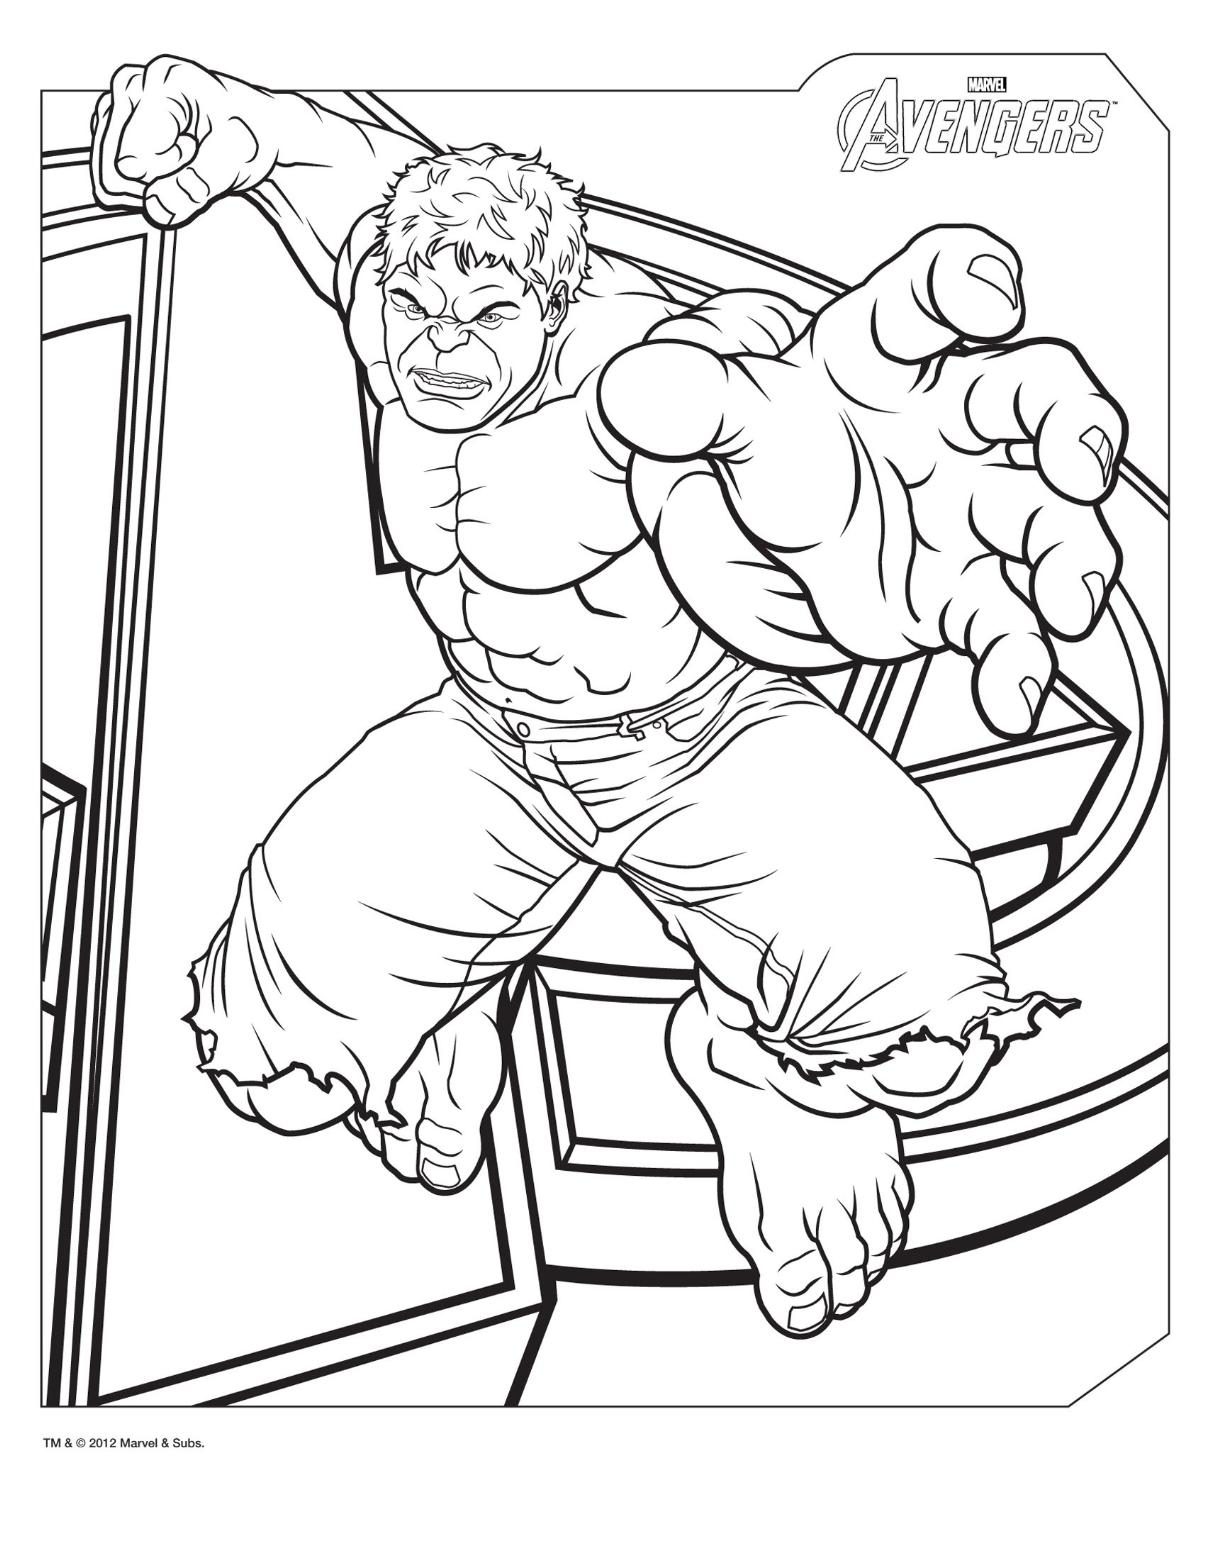 It's just a photo of Clever Free Printable Comic Book Coloring Pages